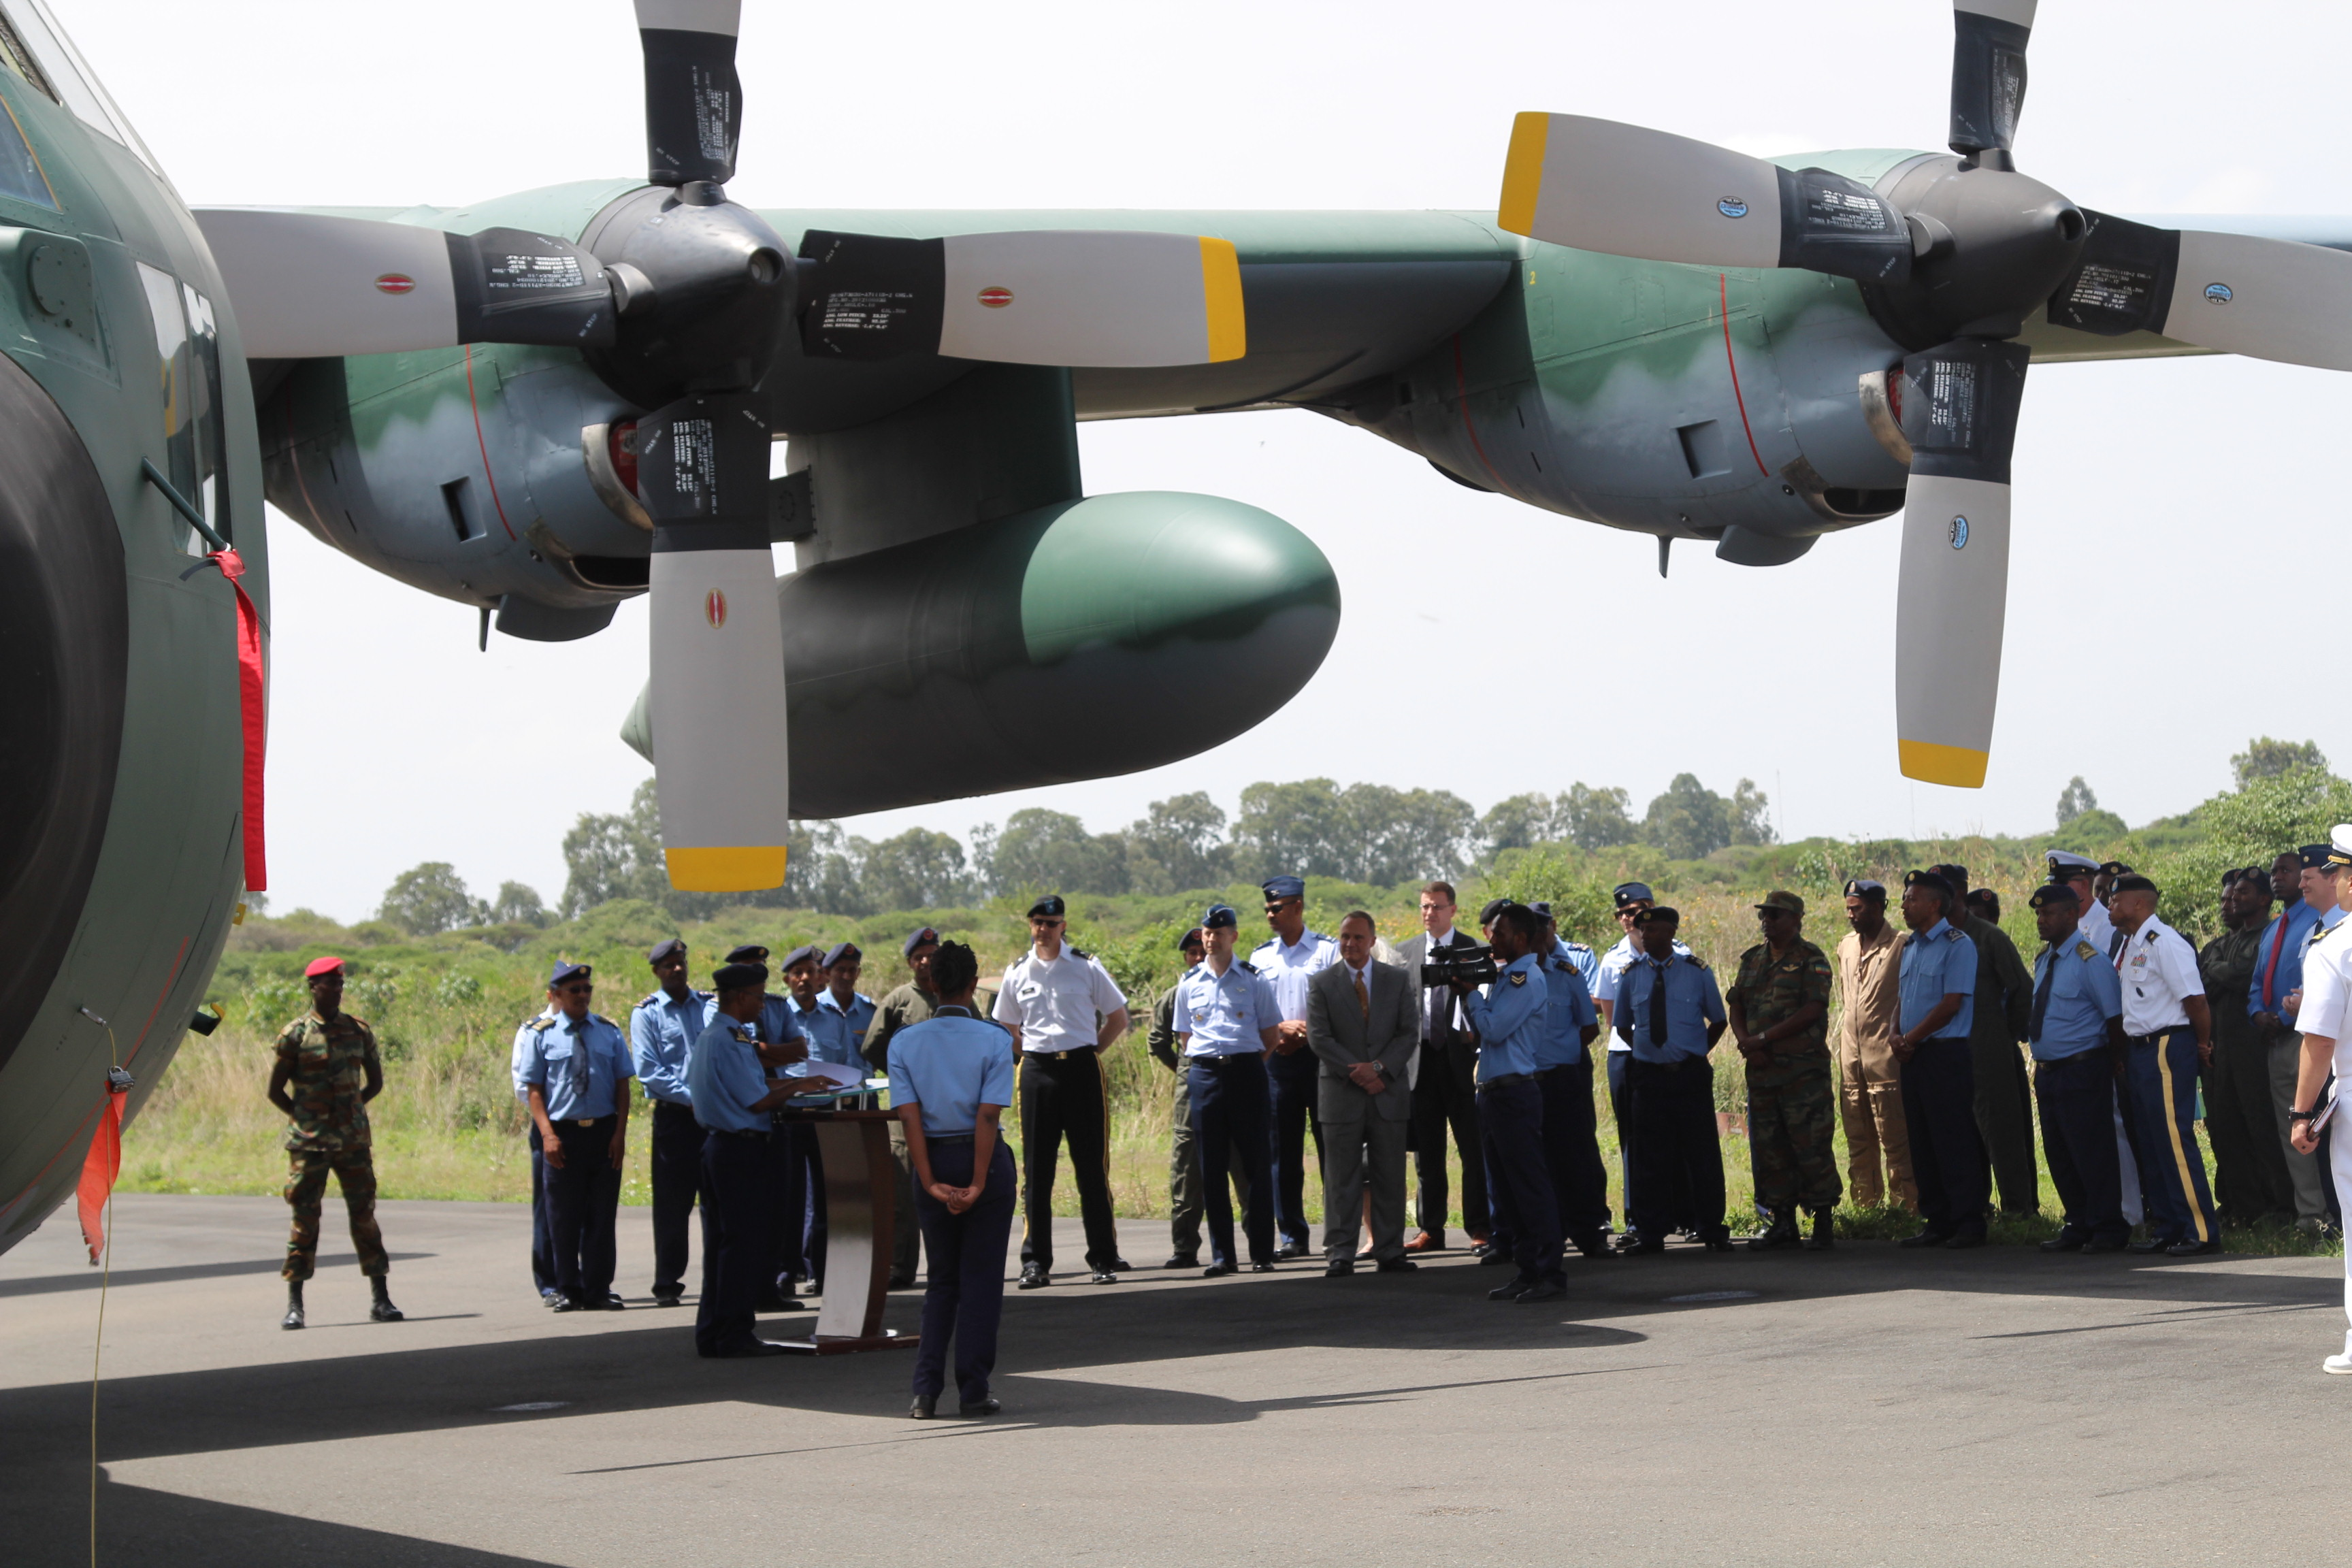 ADDIS ABABA -The U.S. delivered a C-130E Hercules transport aircraft to the Ethiopian Air Force, during a ceremony,  June 7, 2018, in Addis Ababa. The purpose of the aircraft is to enhance Ethiopia's capacity to move humanitarian supplies where they are needed in a timely manner during regional peacekeeping missions. (Photos courtesy of the U.S. Embassy - Ethiopia)